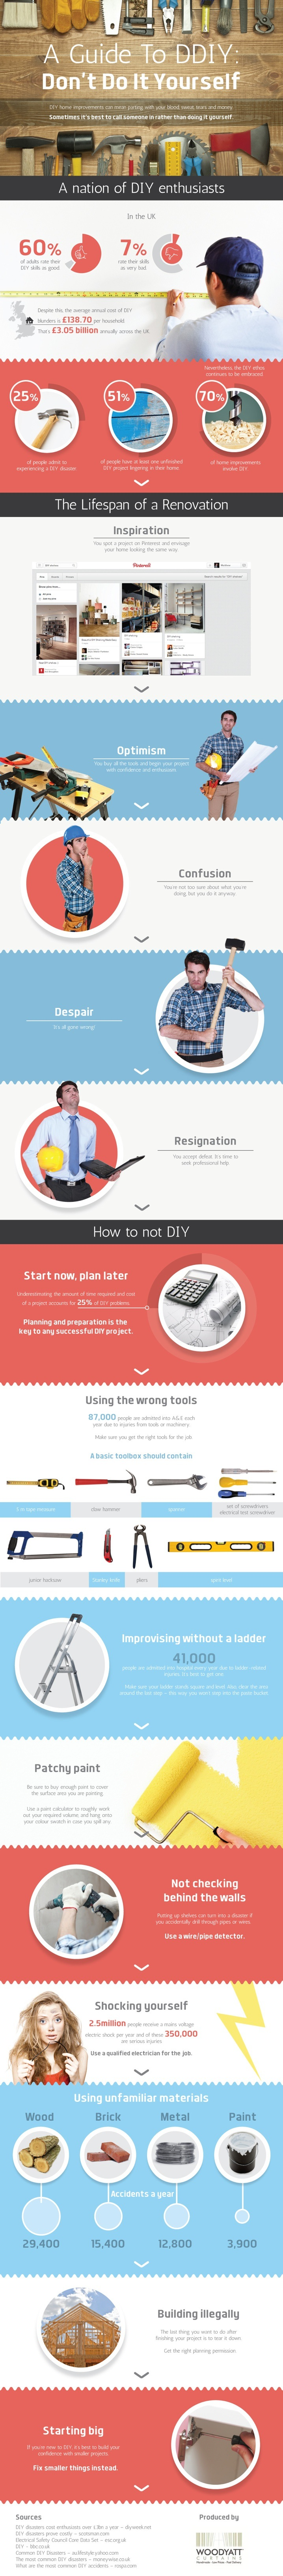 A Guide TO DDIY: Don't Do It Yourself